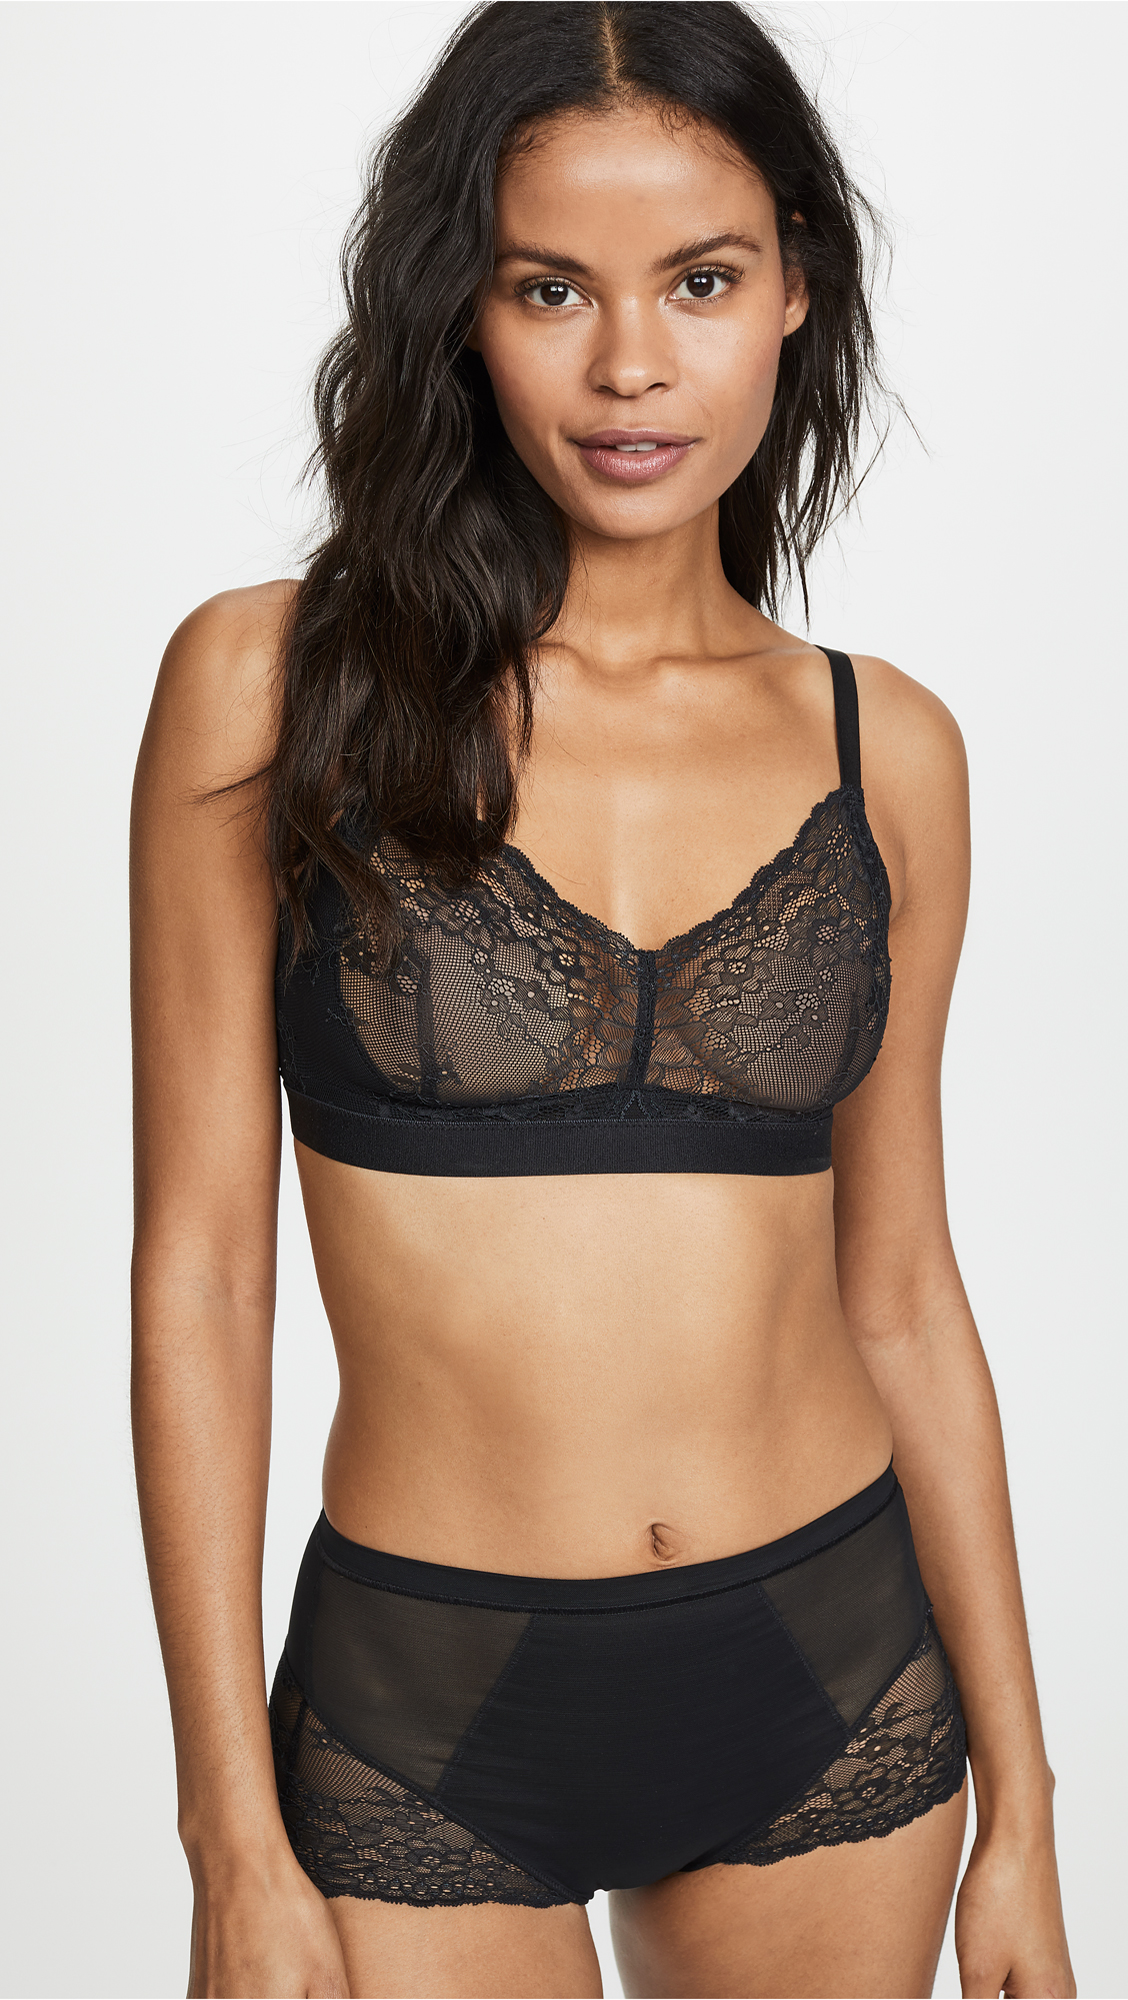 SPANX SPOTLIGHT ON LACE BRALETTE $48